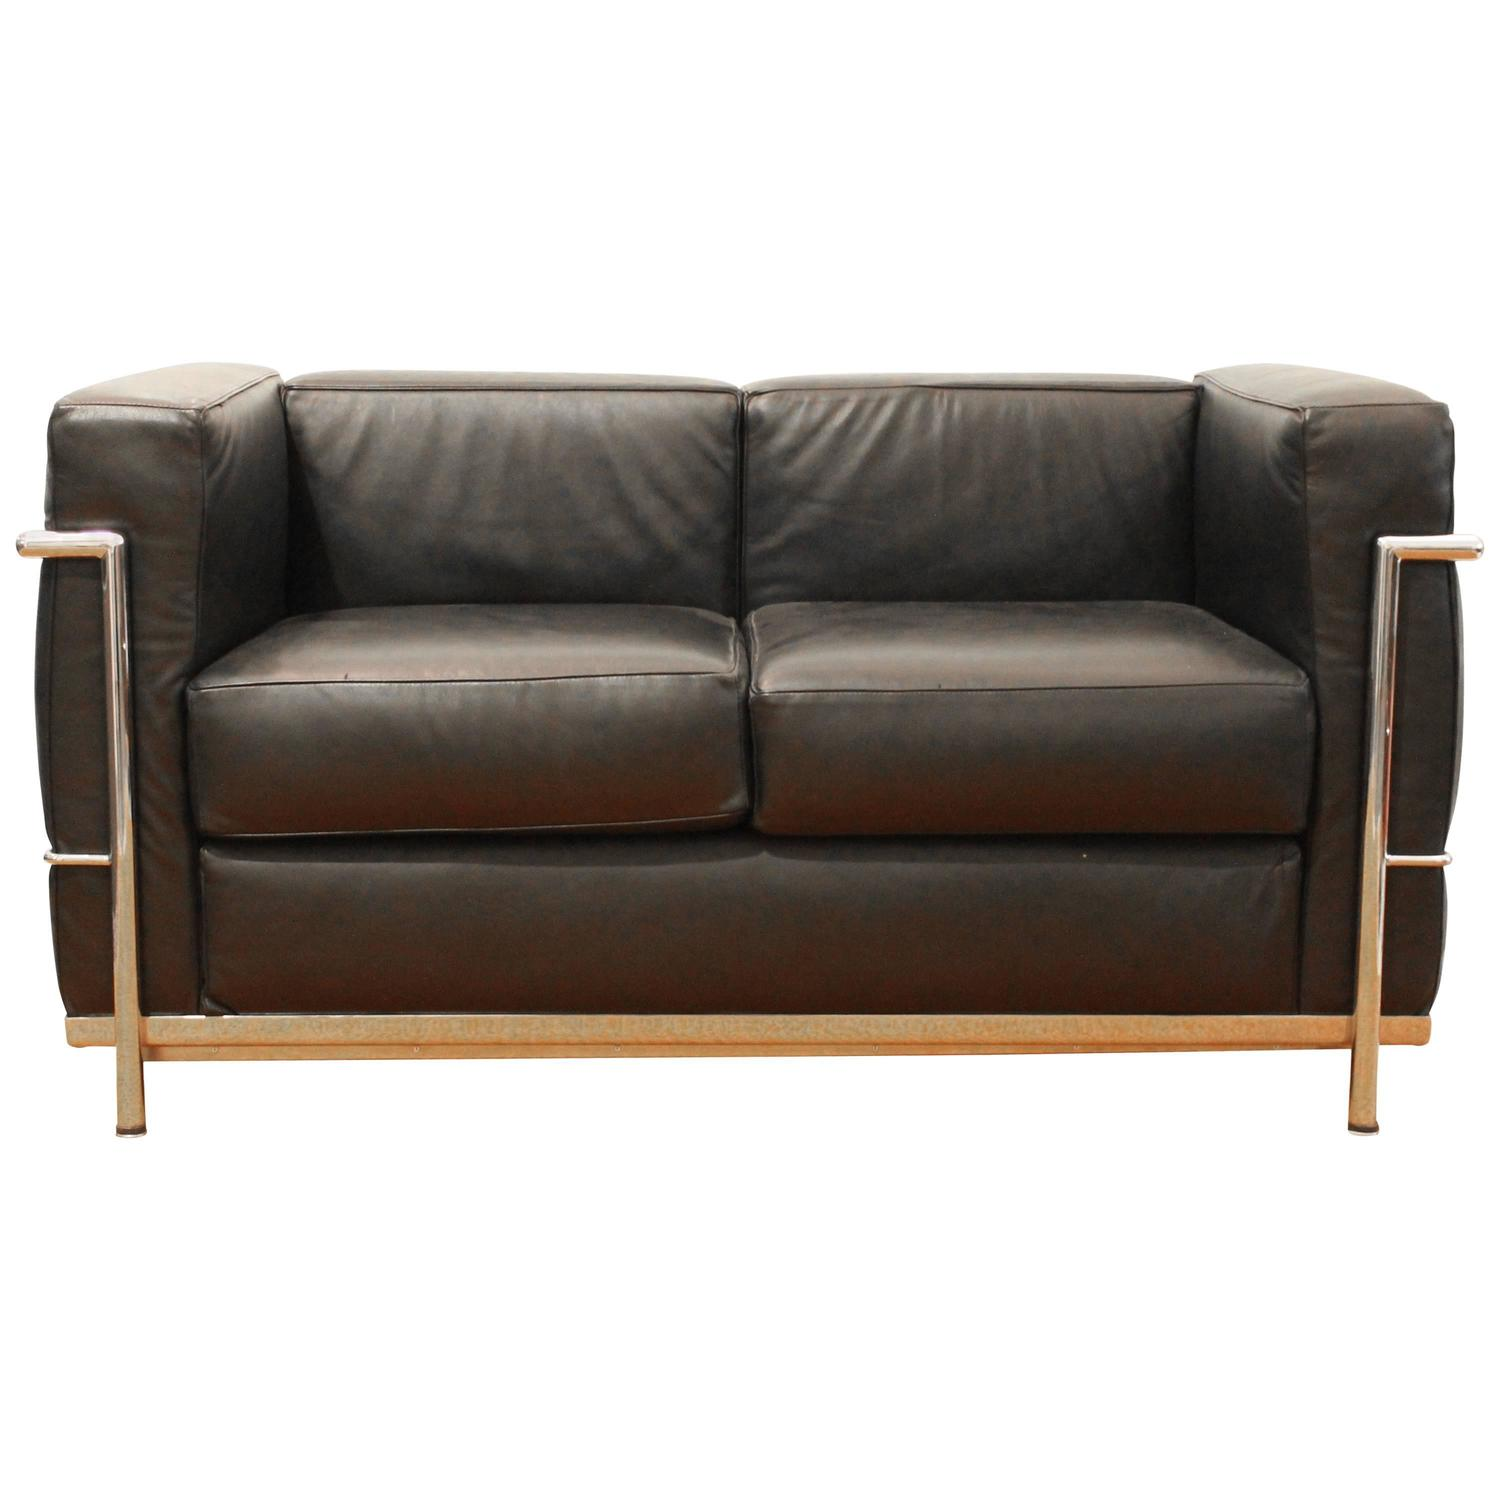 chair design by le corbusier bedroom occasional nz lc2 sofa for alivar sale at 1stdibs